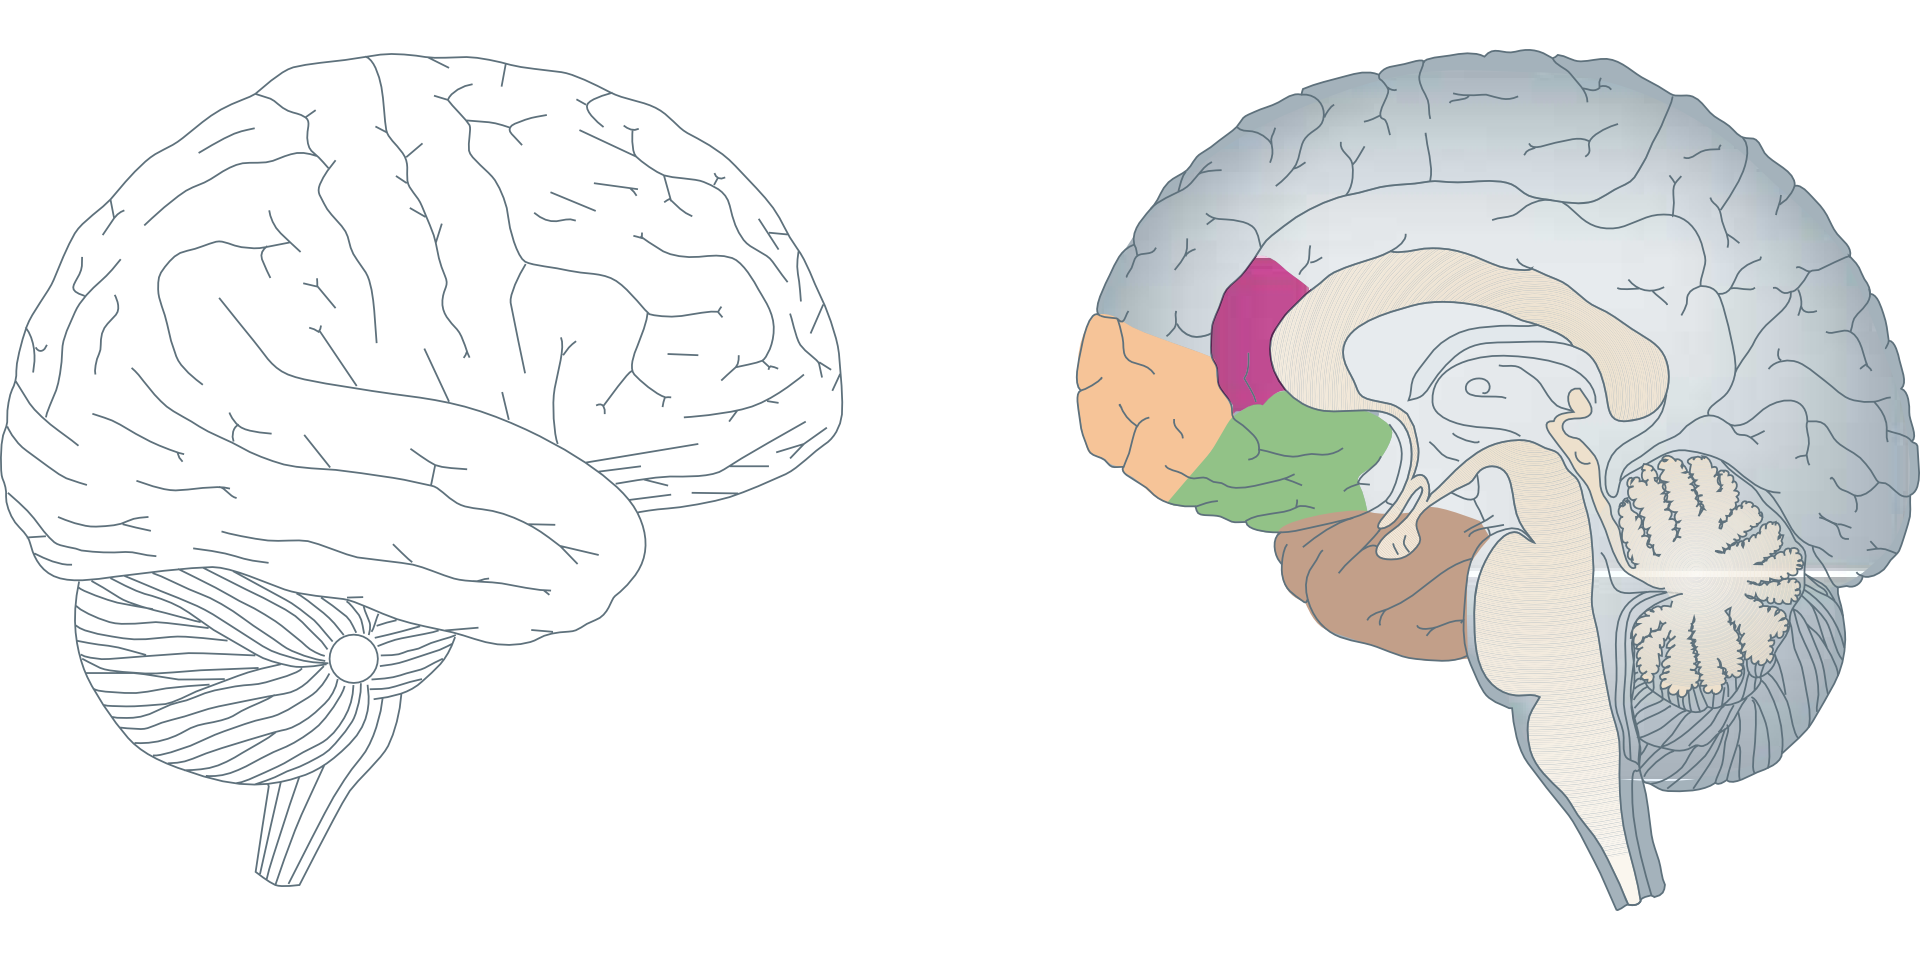 Anatomical Drawing Of The Colored Parts Of The Human Brain Free Image